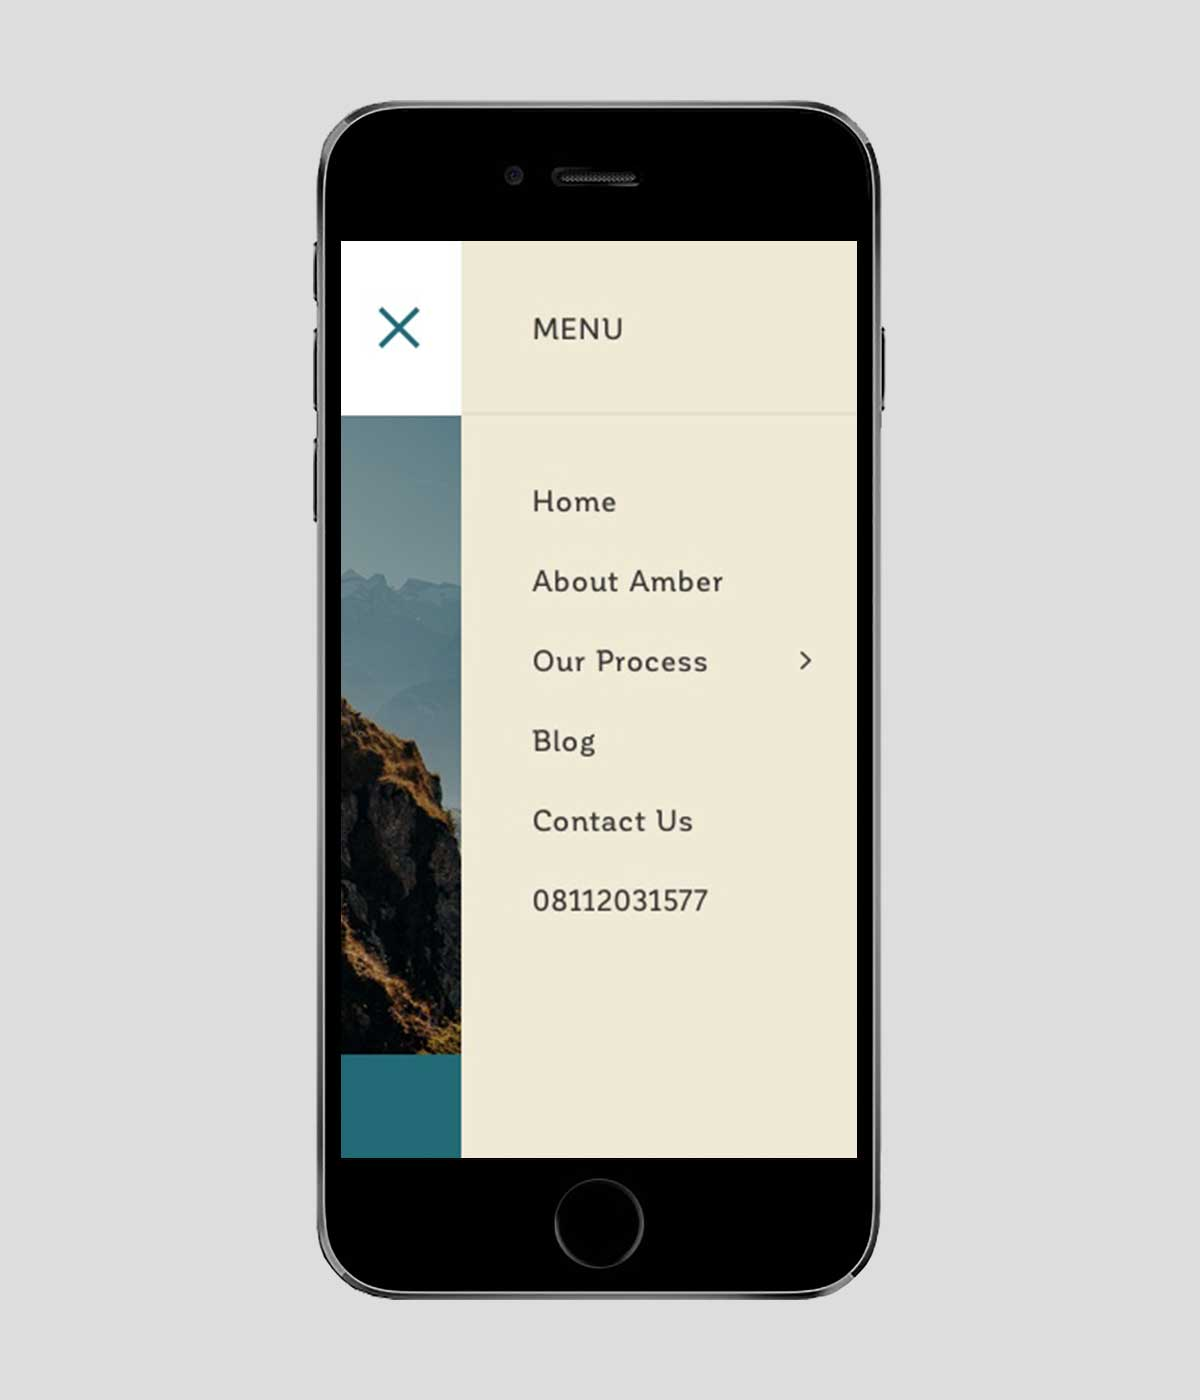 Next Wave Psychology responsive website for navigation menu on iPhone in portrait view